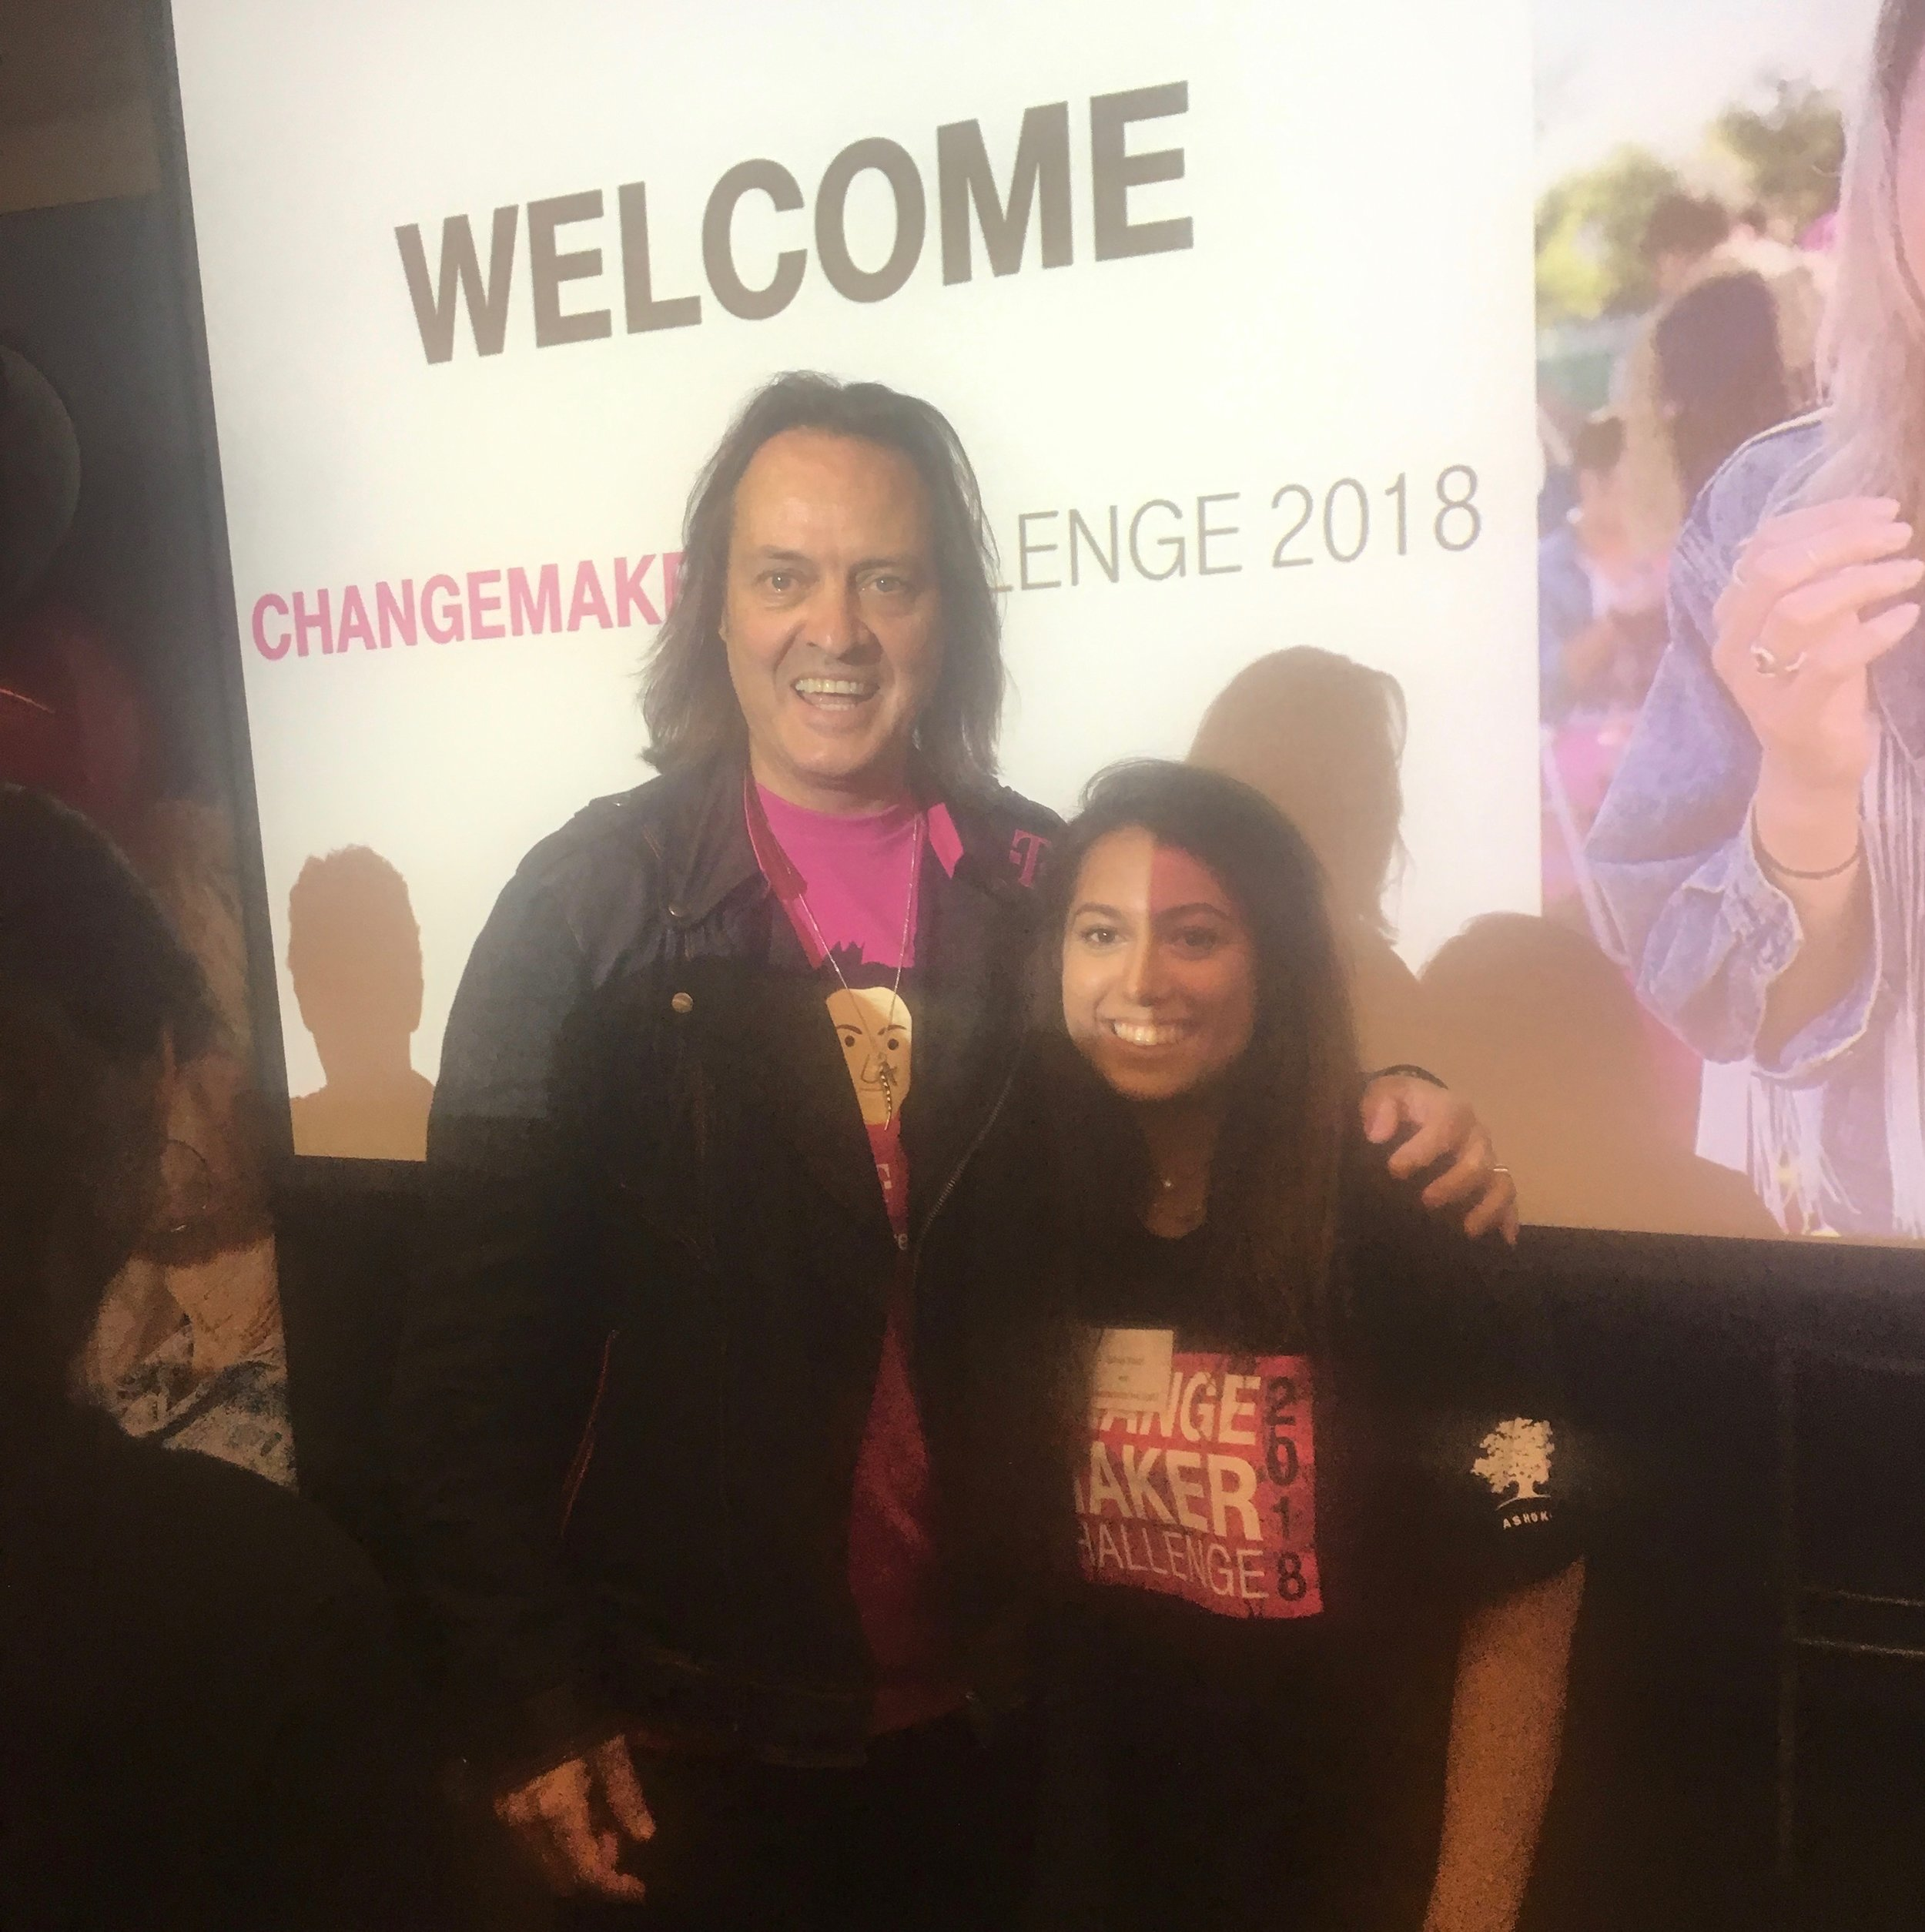 The Founder of RISE, Selma Nouri, pictured to the right of John Legere, the Chief Executive Officer of T-Mobile, at the T-Mobile Changemakers Conference in Seattle, Washington.